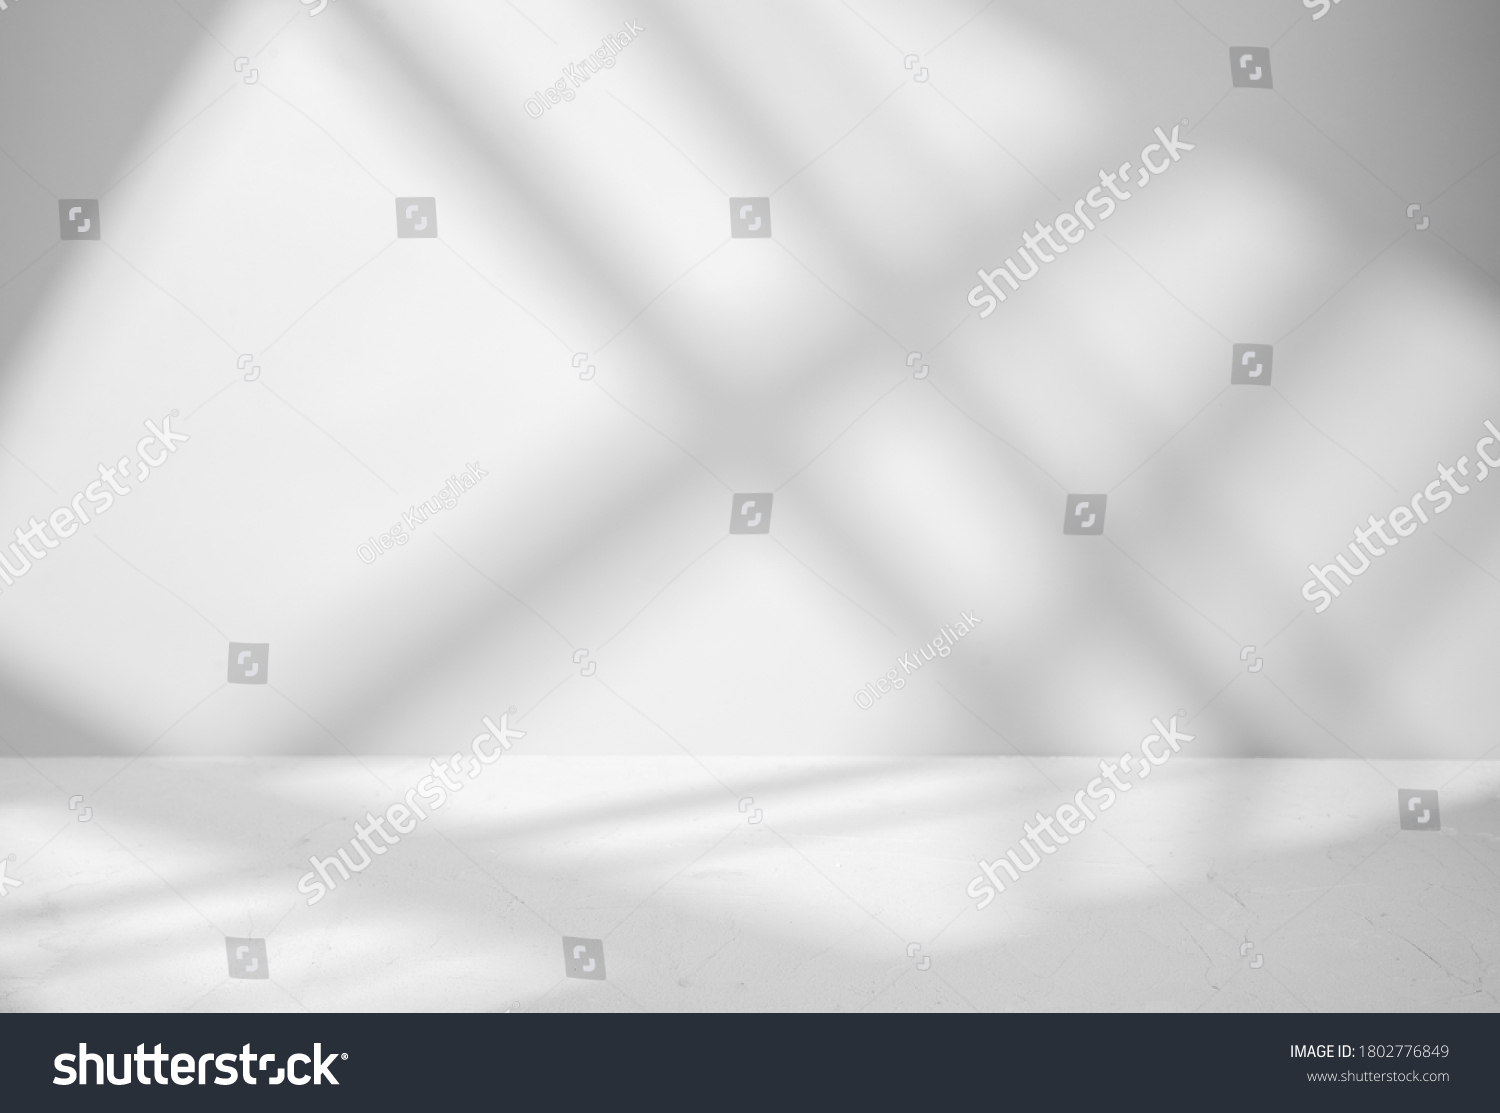 Gray background for product presentation with shadow and light from windows #1802776849